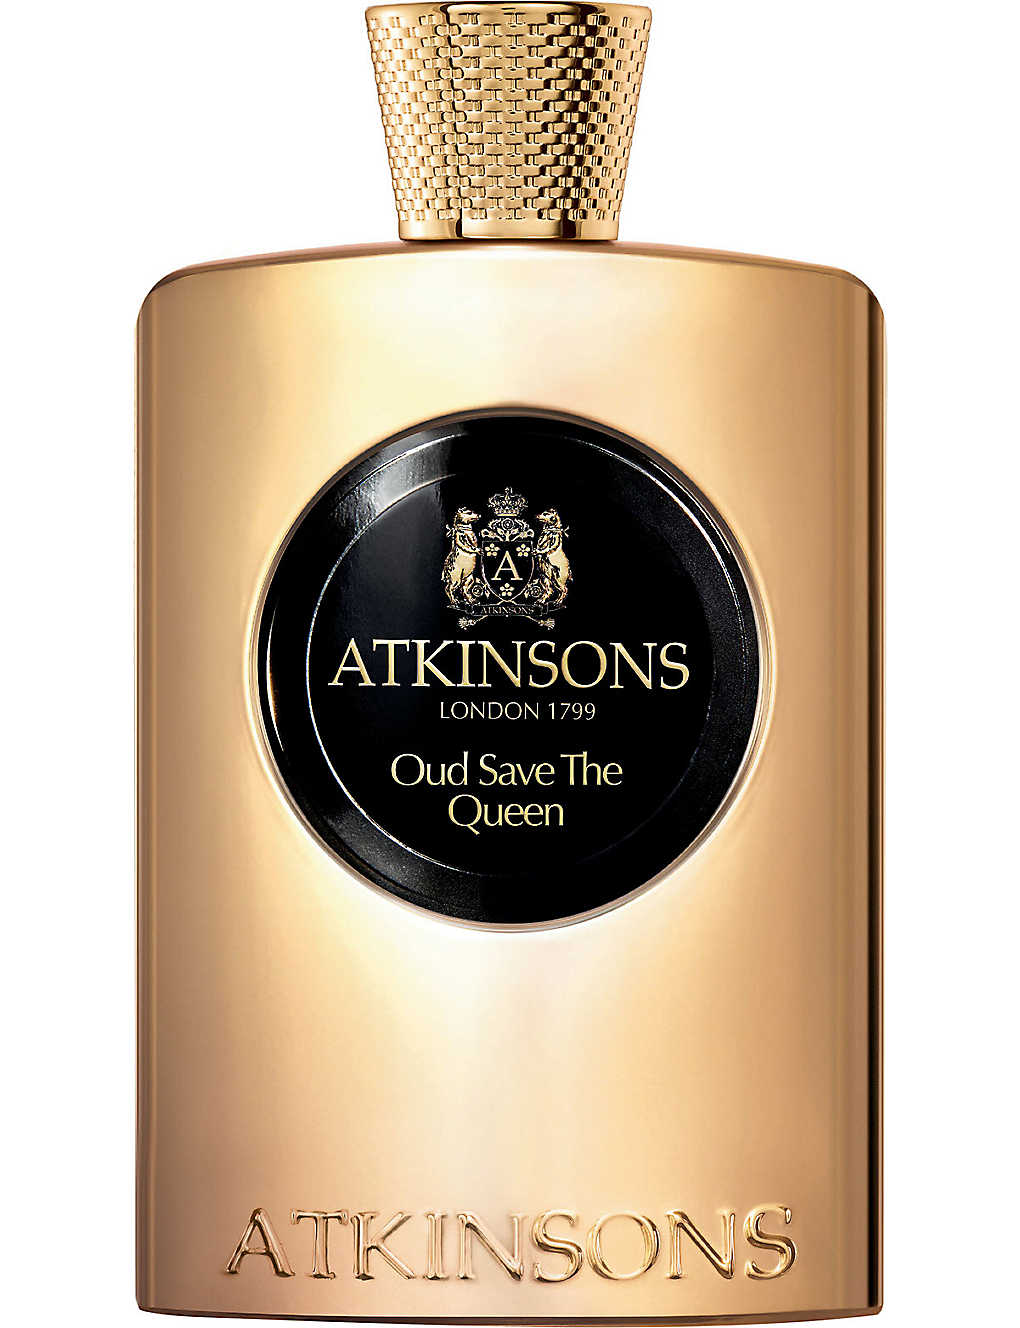 ATKINSONS: Oud Save the Queen eau de parfum 100ml